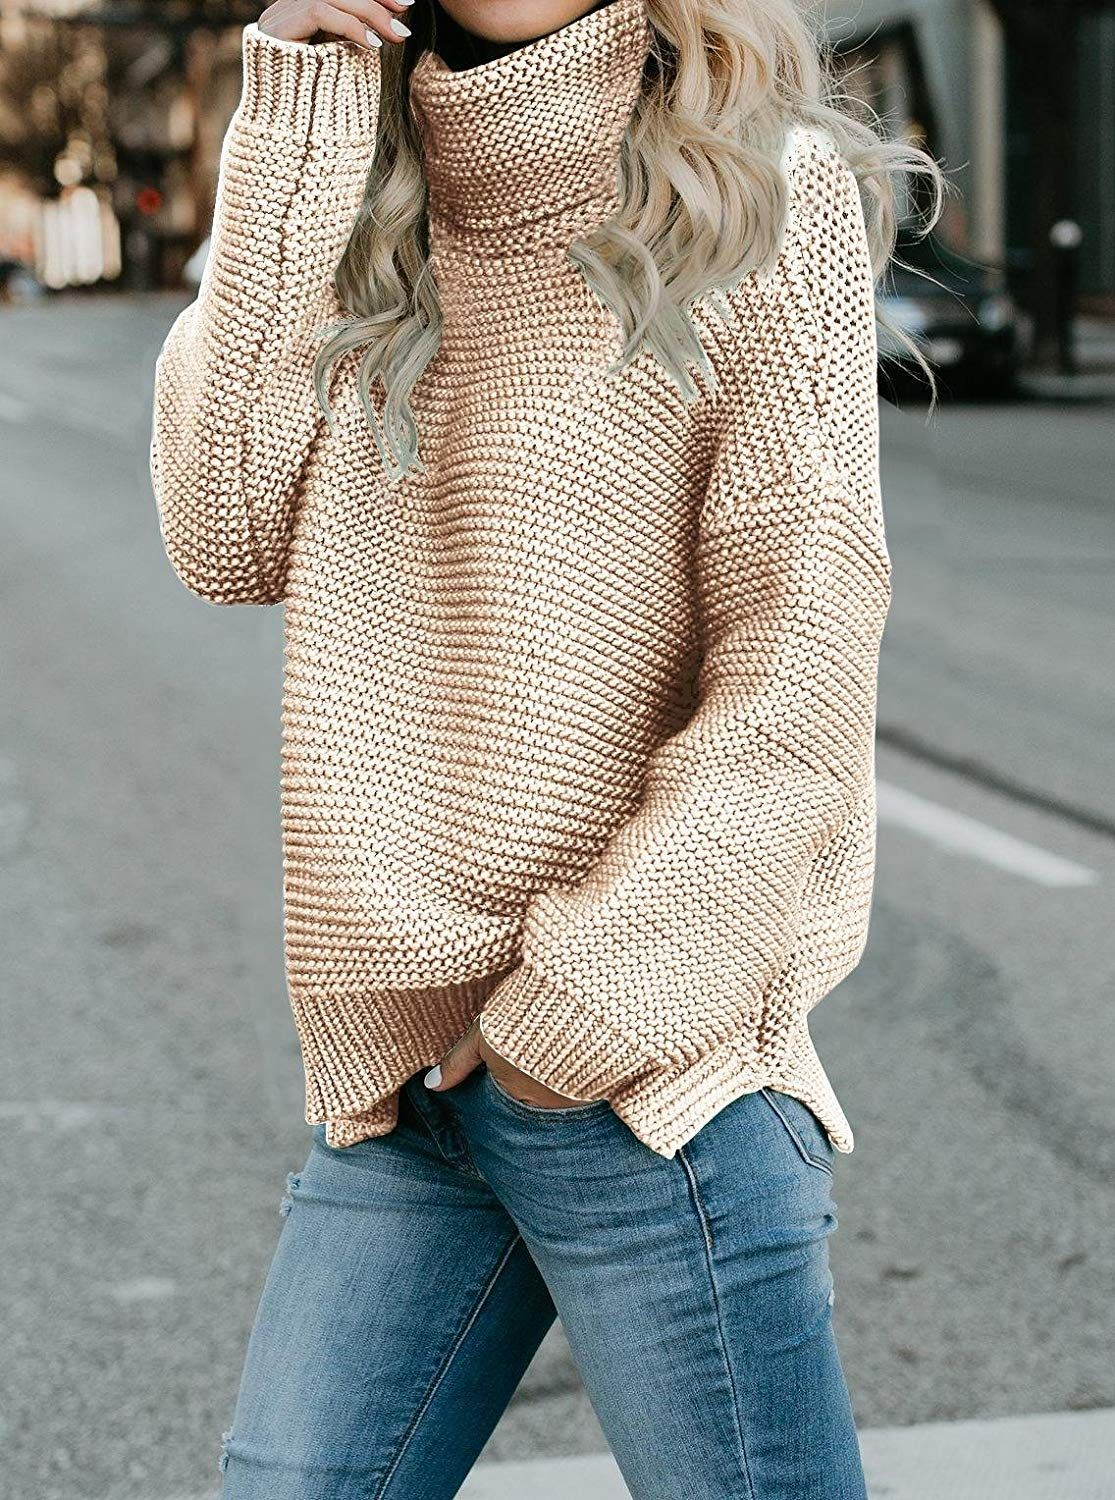 6b3033b017a1 EastLife Womens Oversized Sweaters Turtleneck Casual Long Sleeve ...